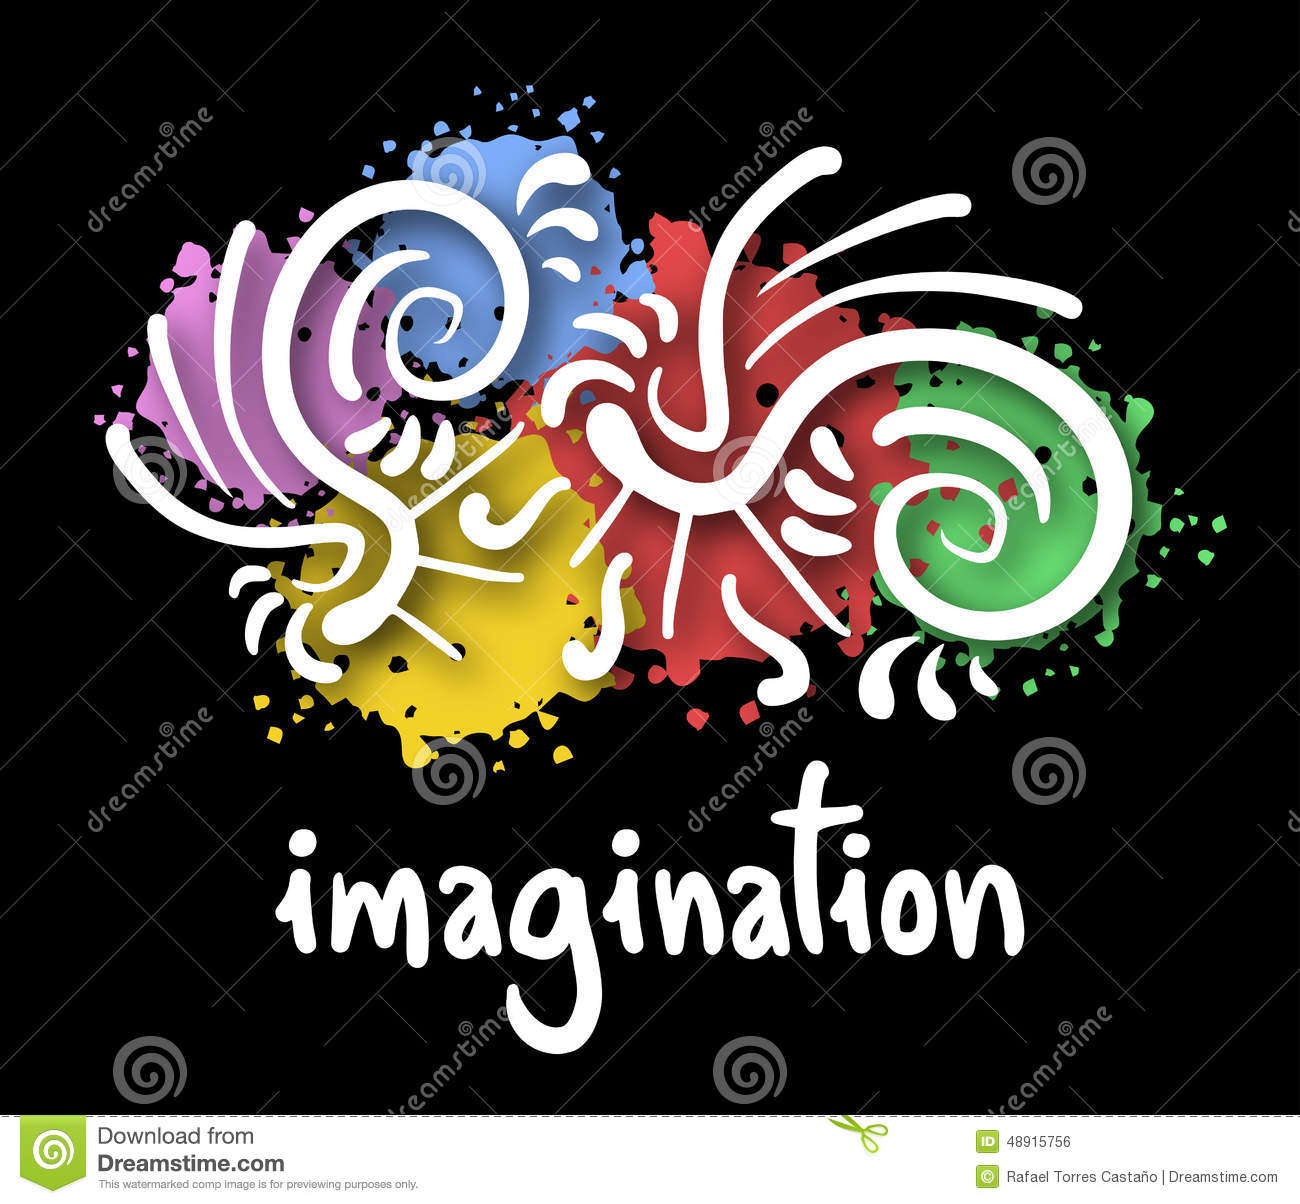 Imagination Symbol Related Keywords & Suggestions - Imagination ...